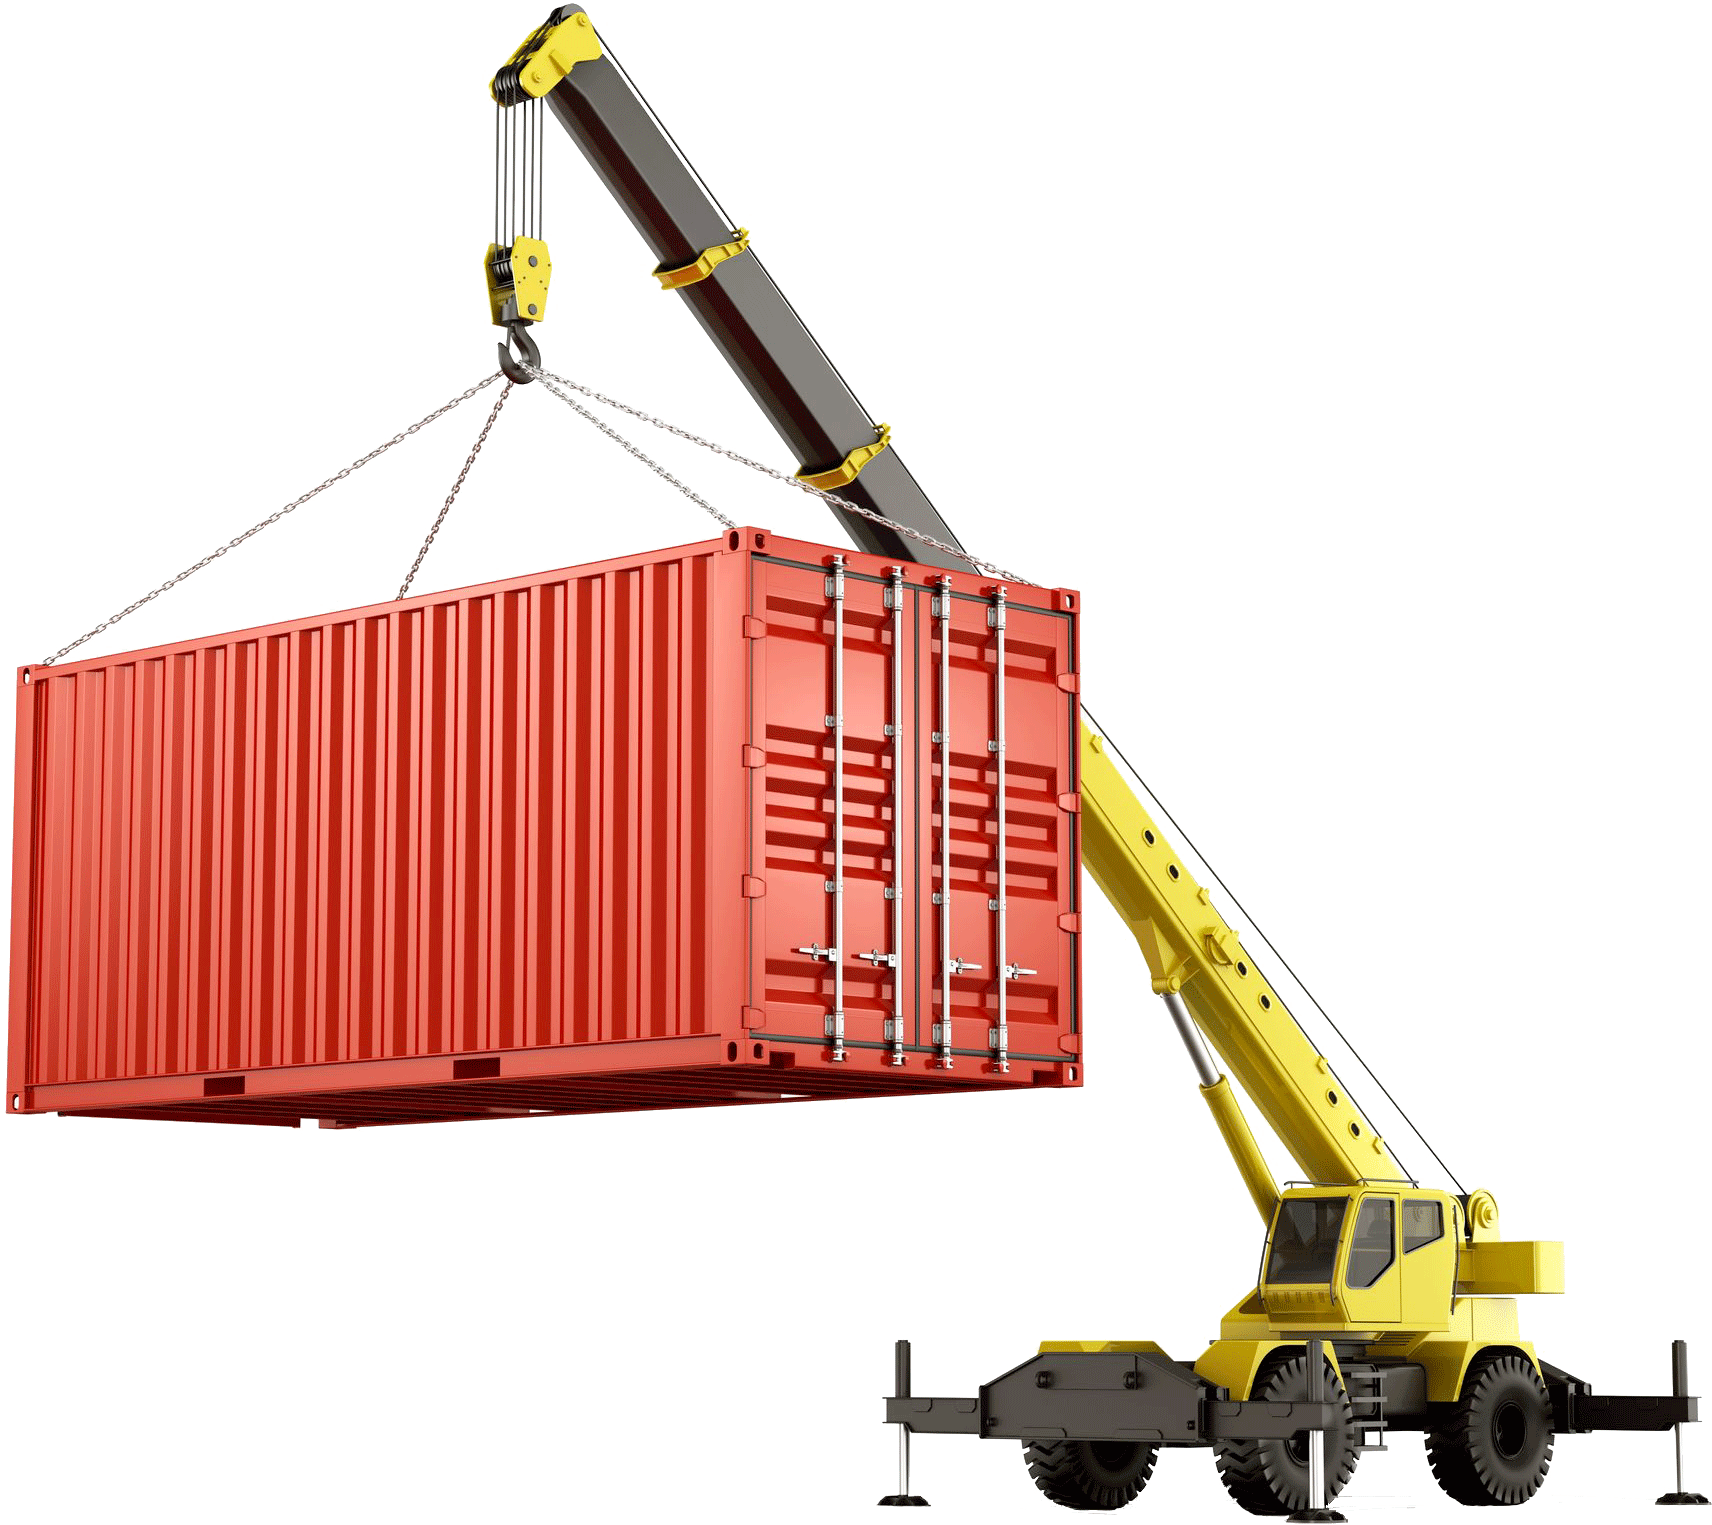 http://www.lstransport.fr/wp-content/uploads/2016/02/container3-1.png